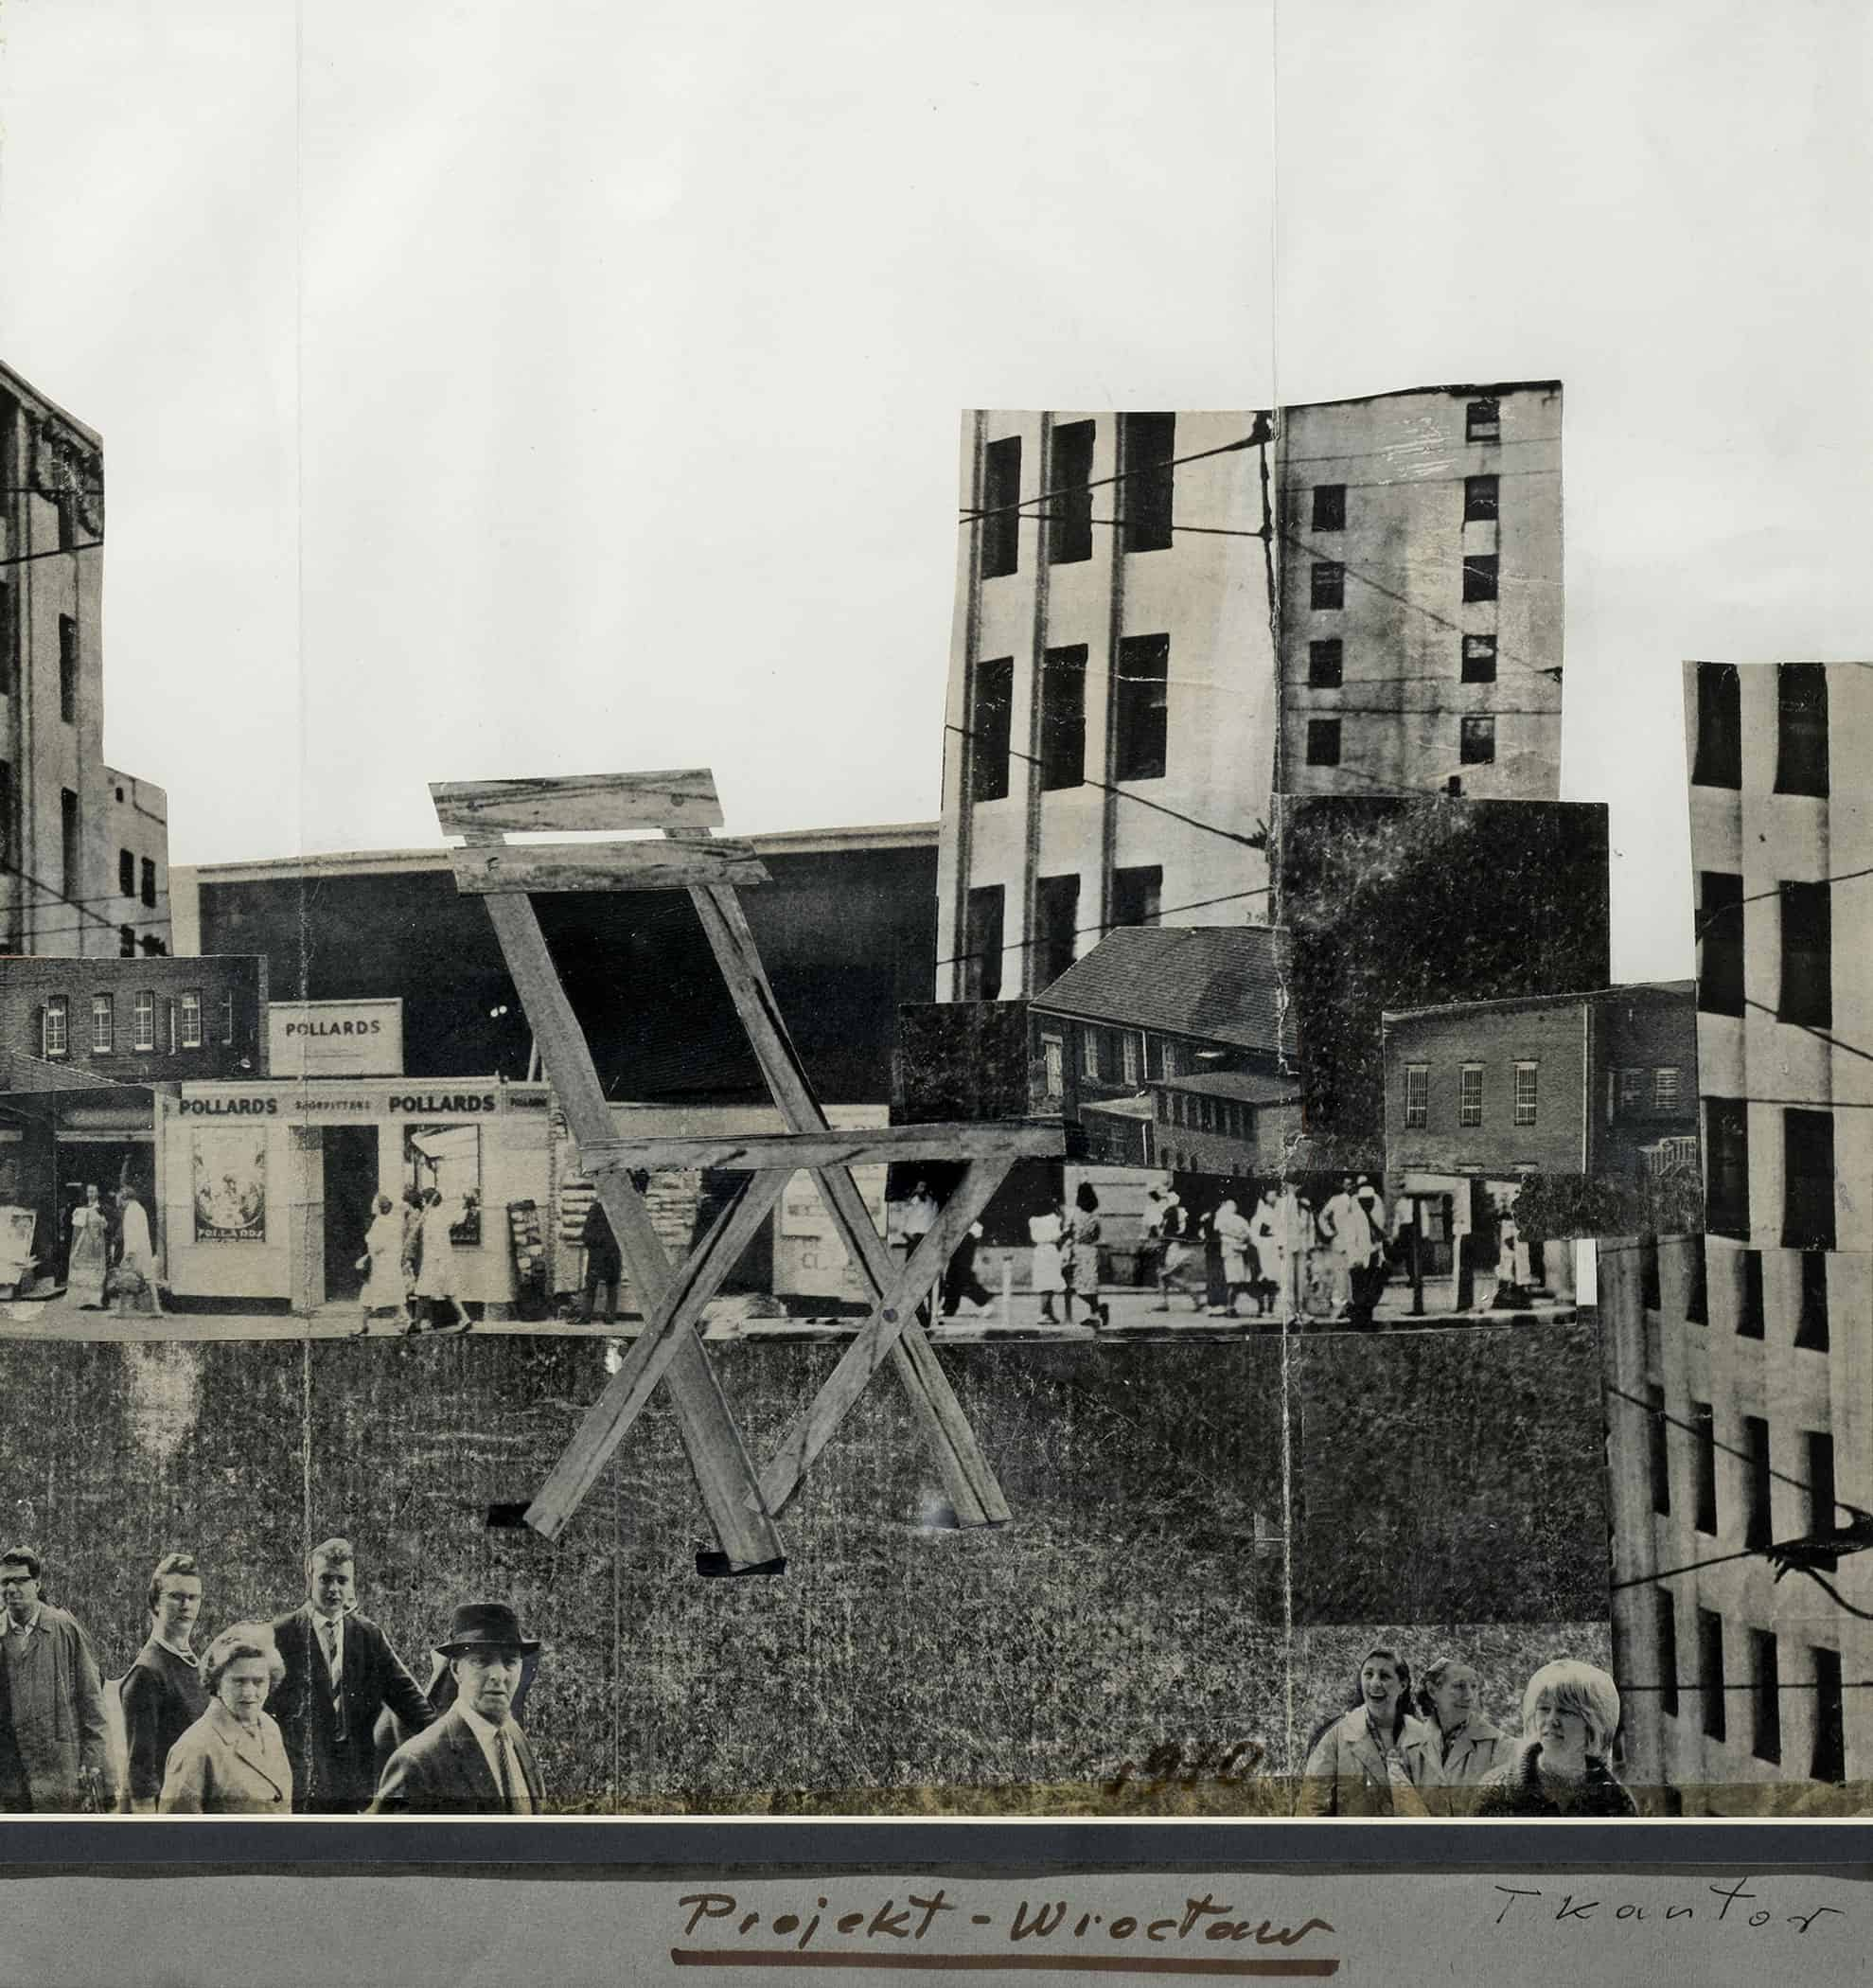 Tadeusz Kantor, Location of the Chair, 1970, collage, paper, 48 x 51 cm. Photograph by Mirosław Łanowiecki. Collection of the Museum of Architecture in Wrocław